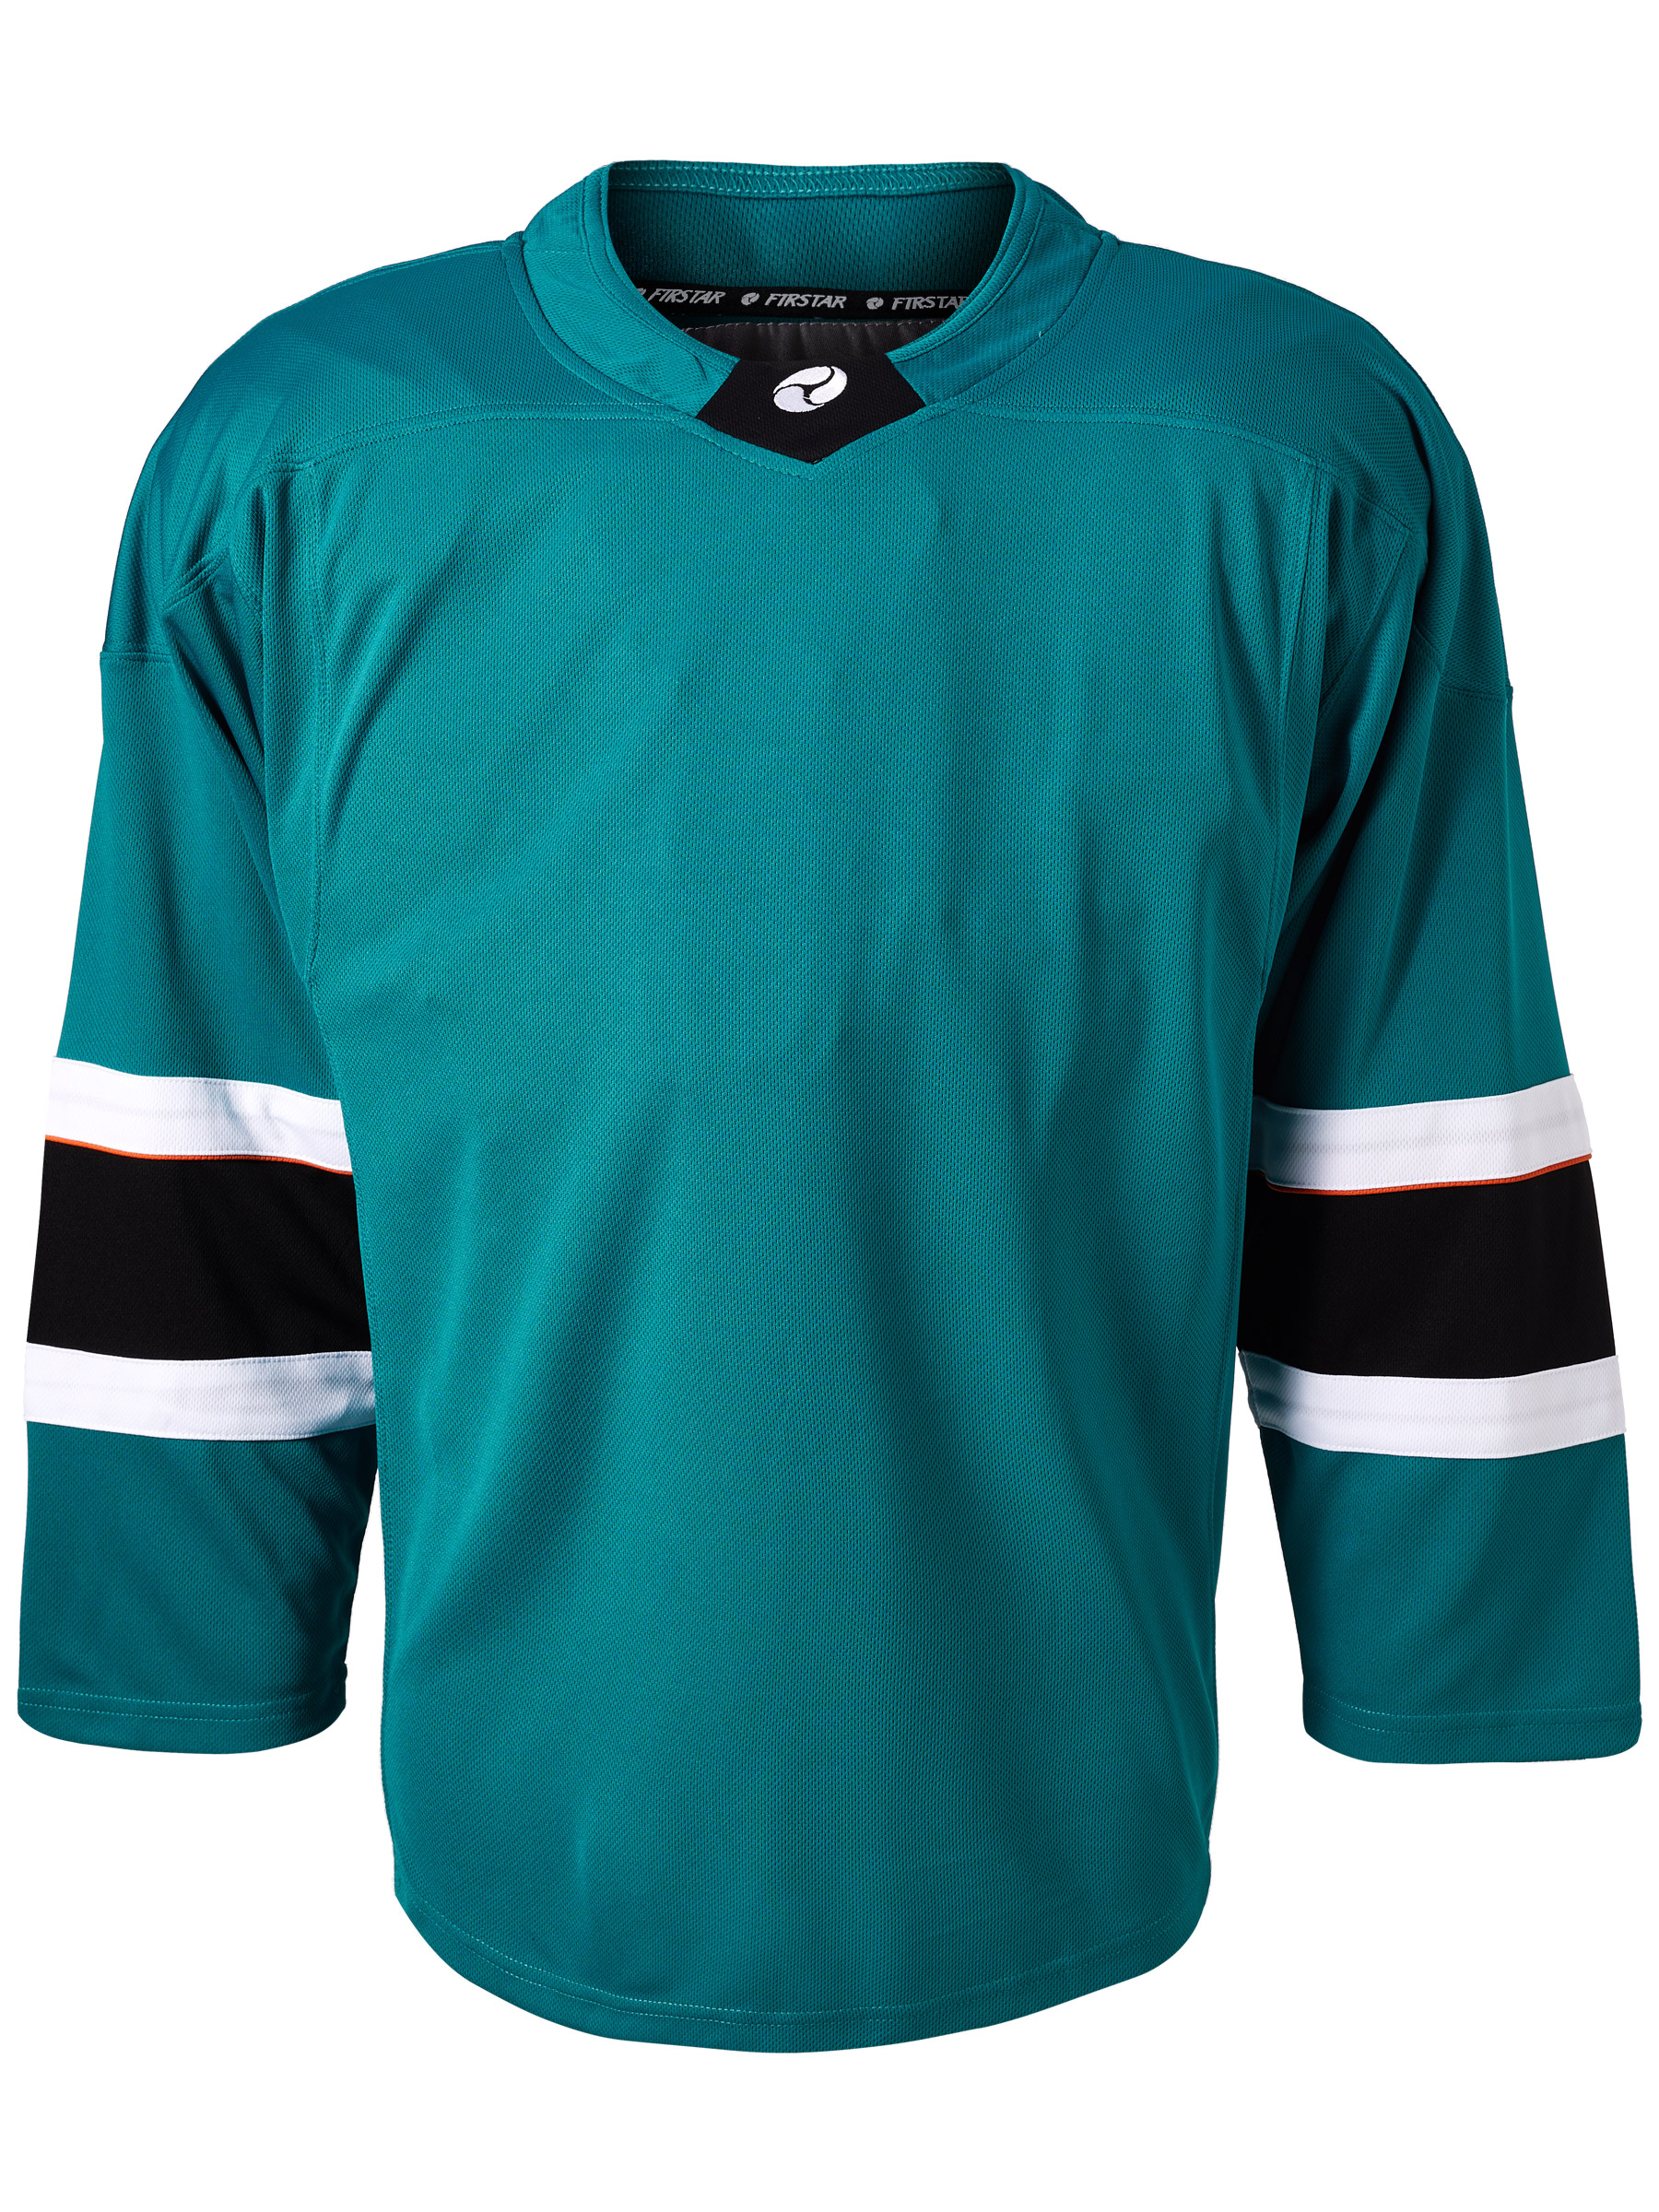 Firstar-Gamewear-Jersey-SanJose-Teal.jpeg